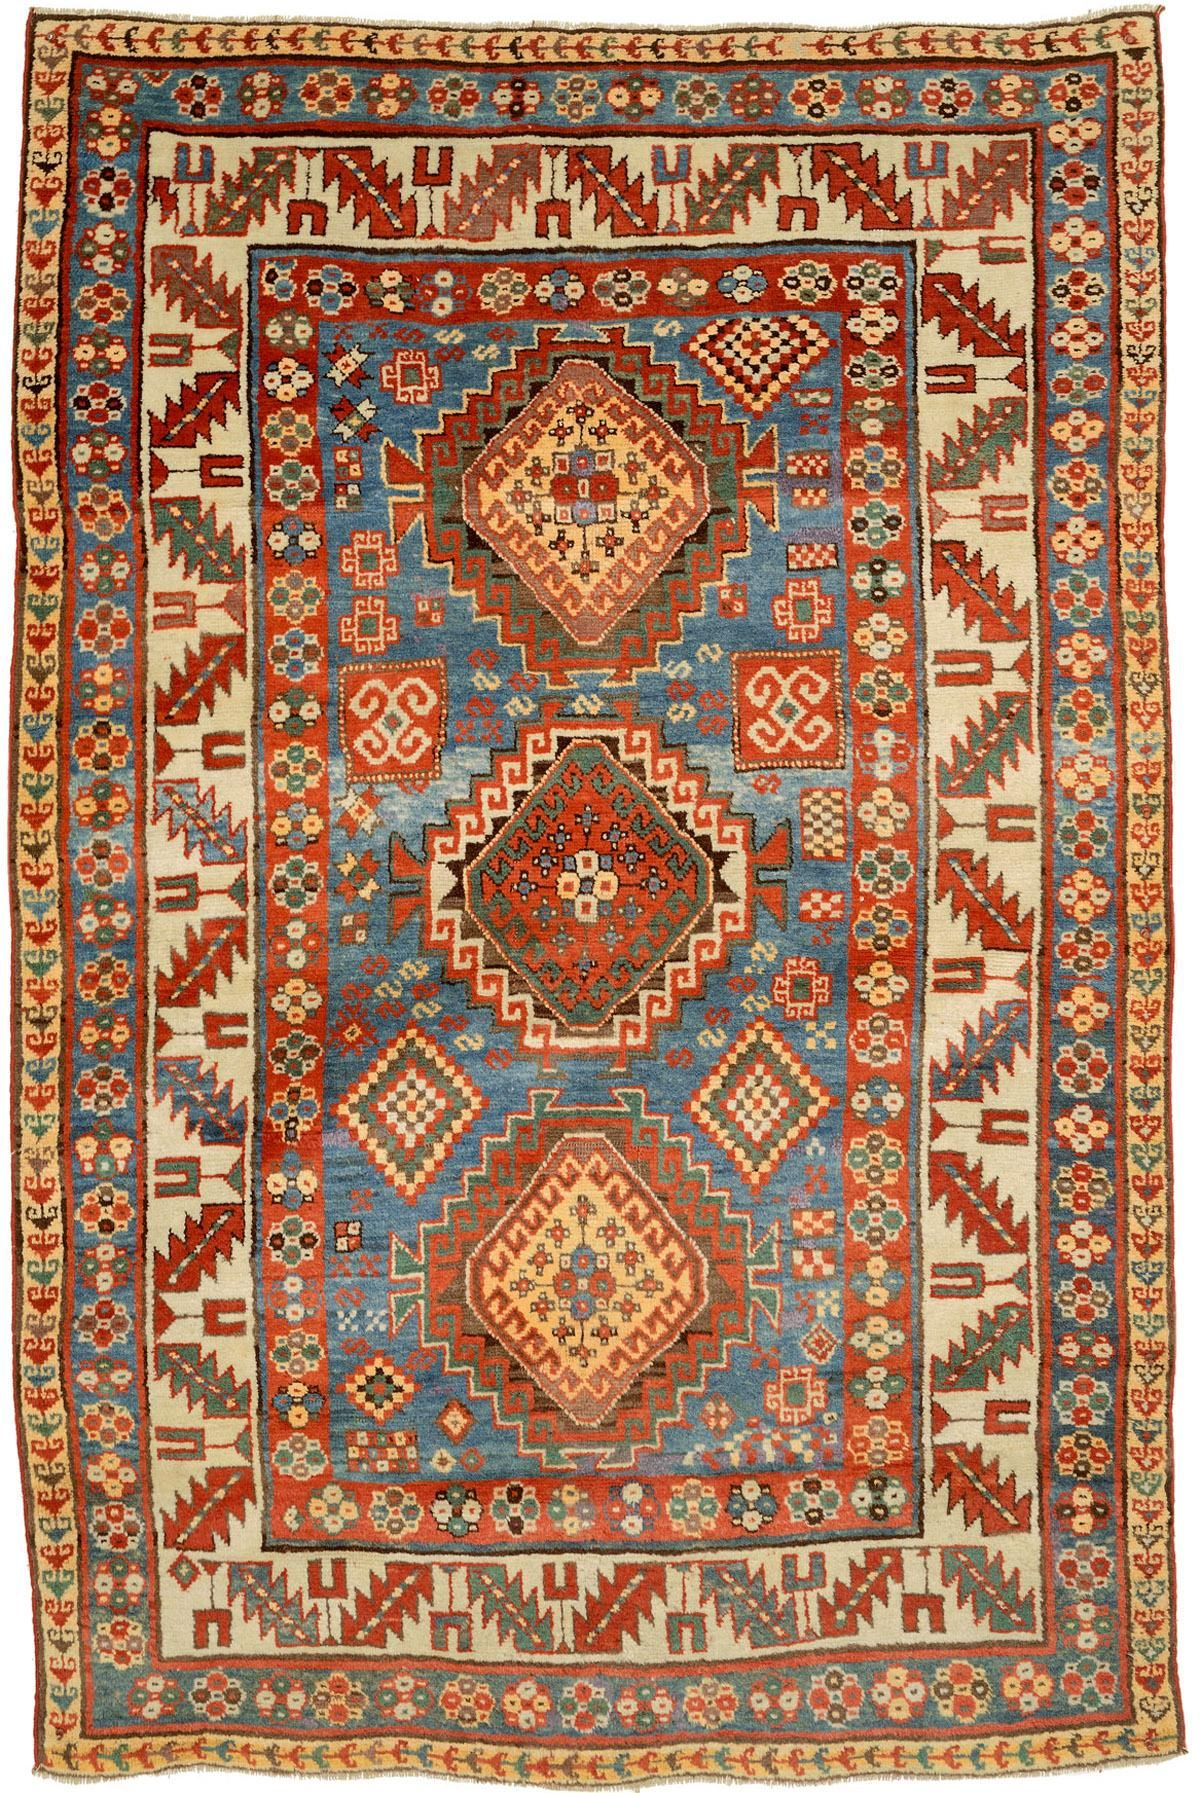 Basic Overview Of Antique Collectible Caucasian Rugs And Carpets Rugs On Carpet Carpet Handmade Tribal Rug